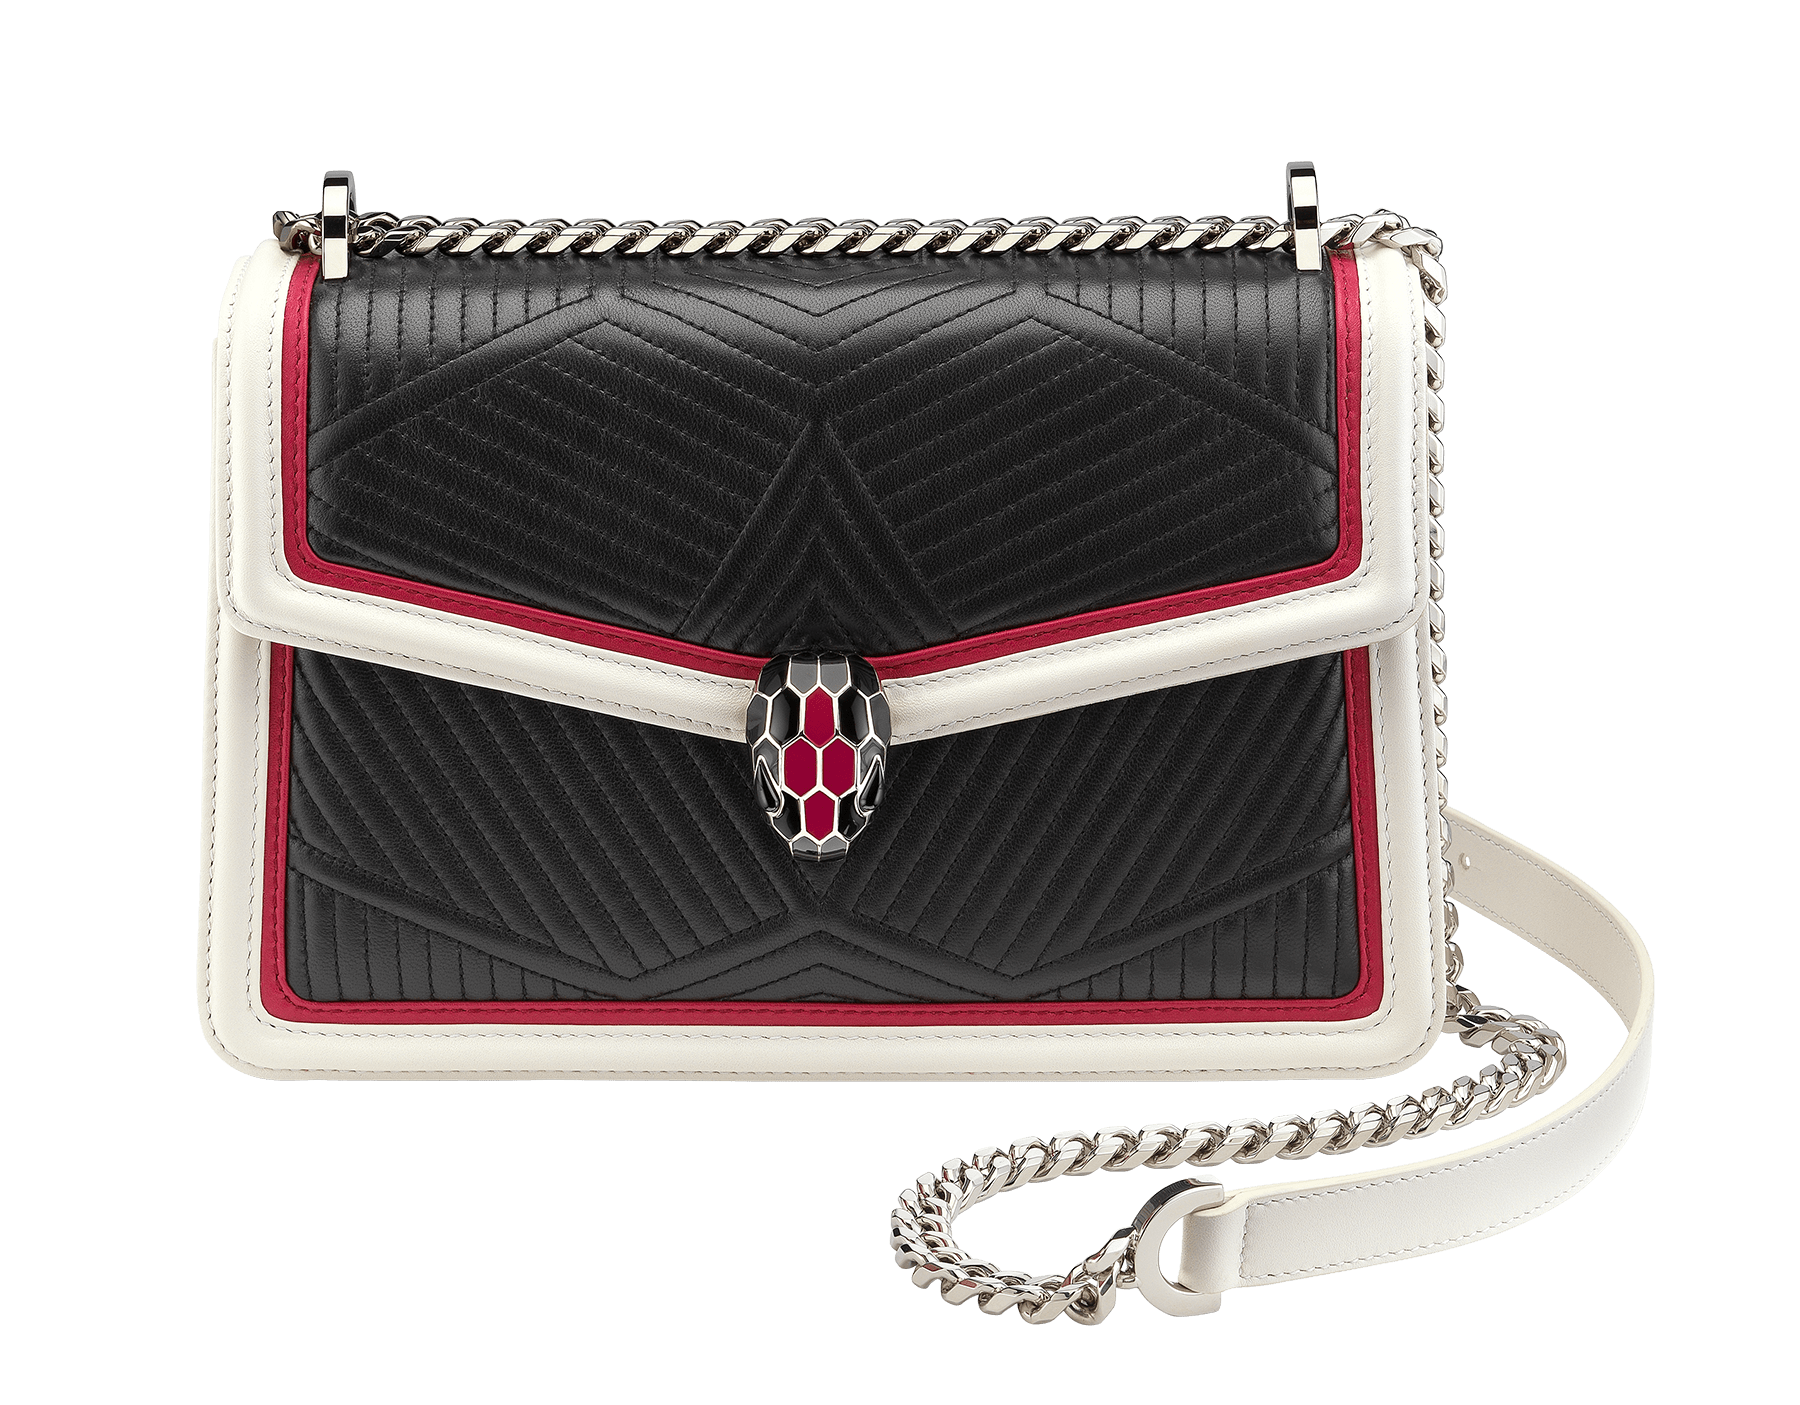 """""""Serpenti Diamond Blast"""" shoulder bag in black quilted nappa leather body and white agate and jazzy tourmaline calf leather frames. Iconic snakehead closure in palladium plated brass enriched with black and jazzy tourmaline enamel and black onyx eyes. 287186 image 1"""